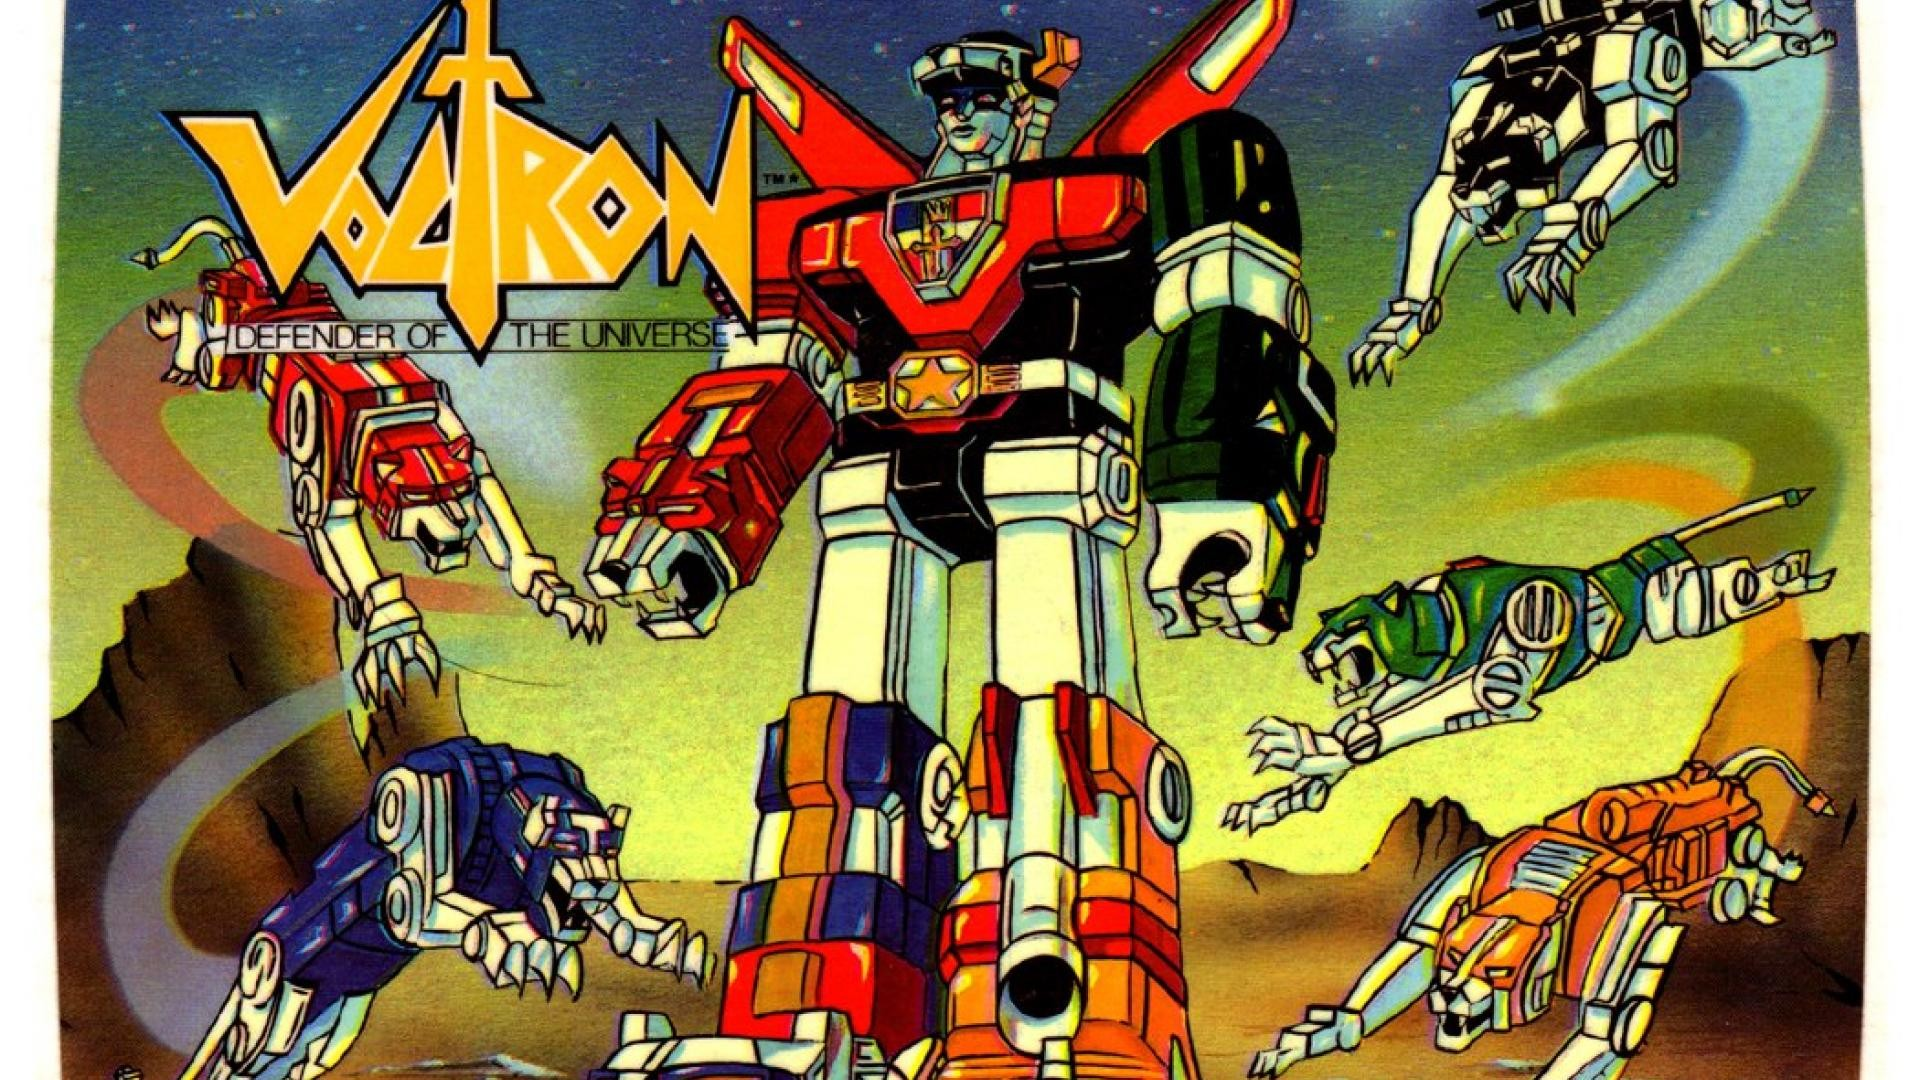 Voltron Wallpaper Download Free Cool Hd Wallpapers For Desktop